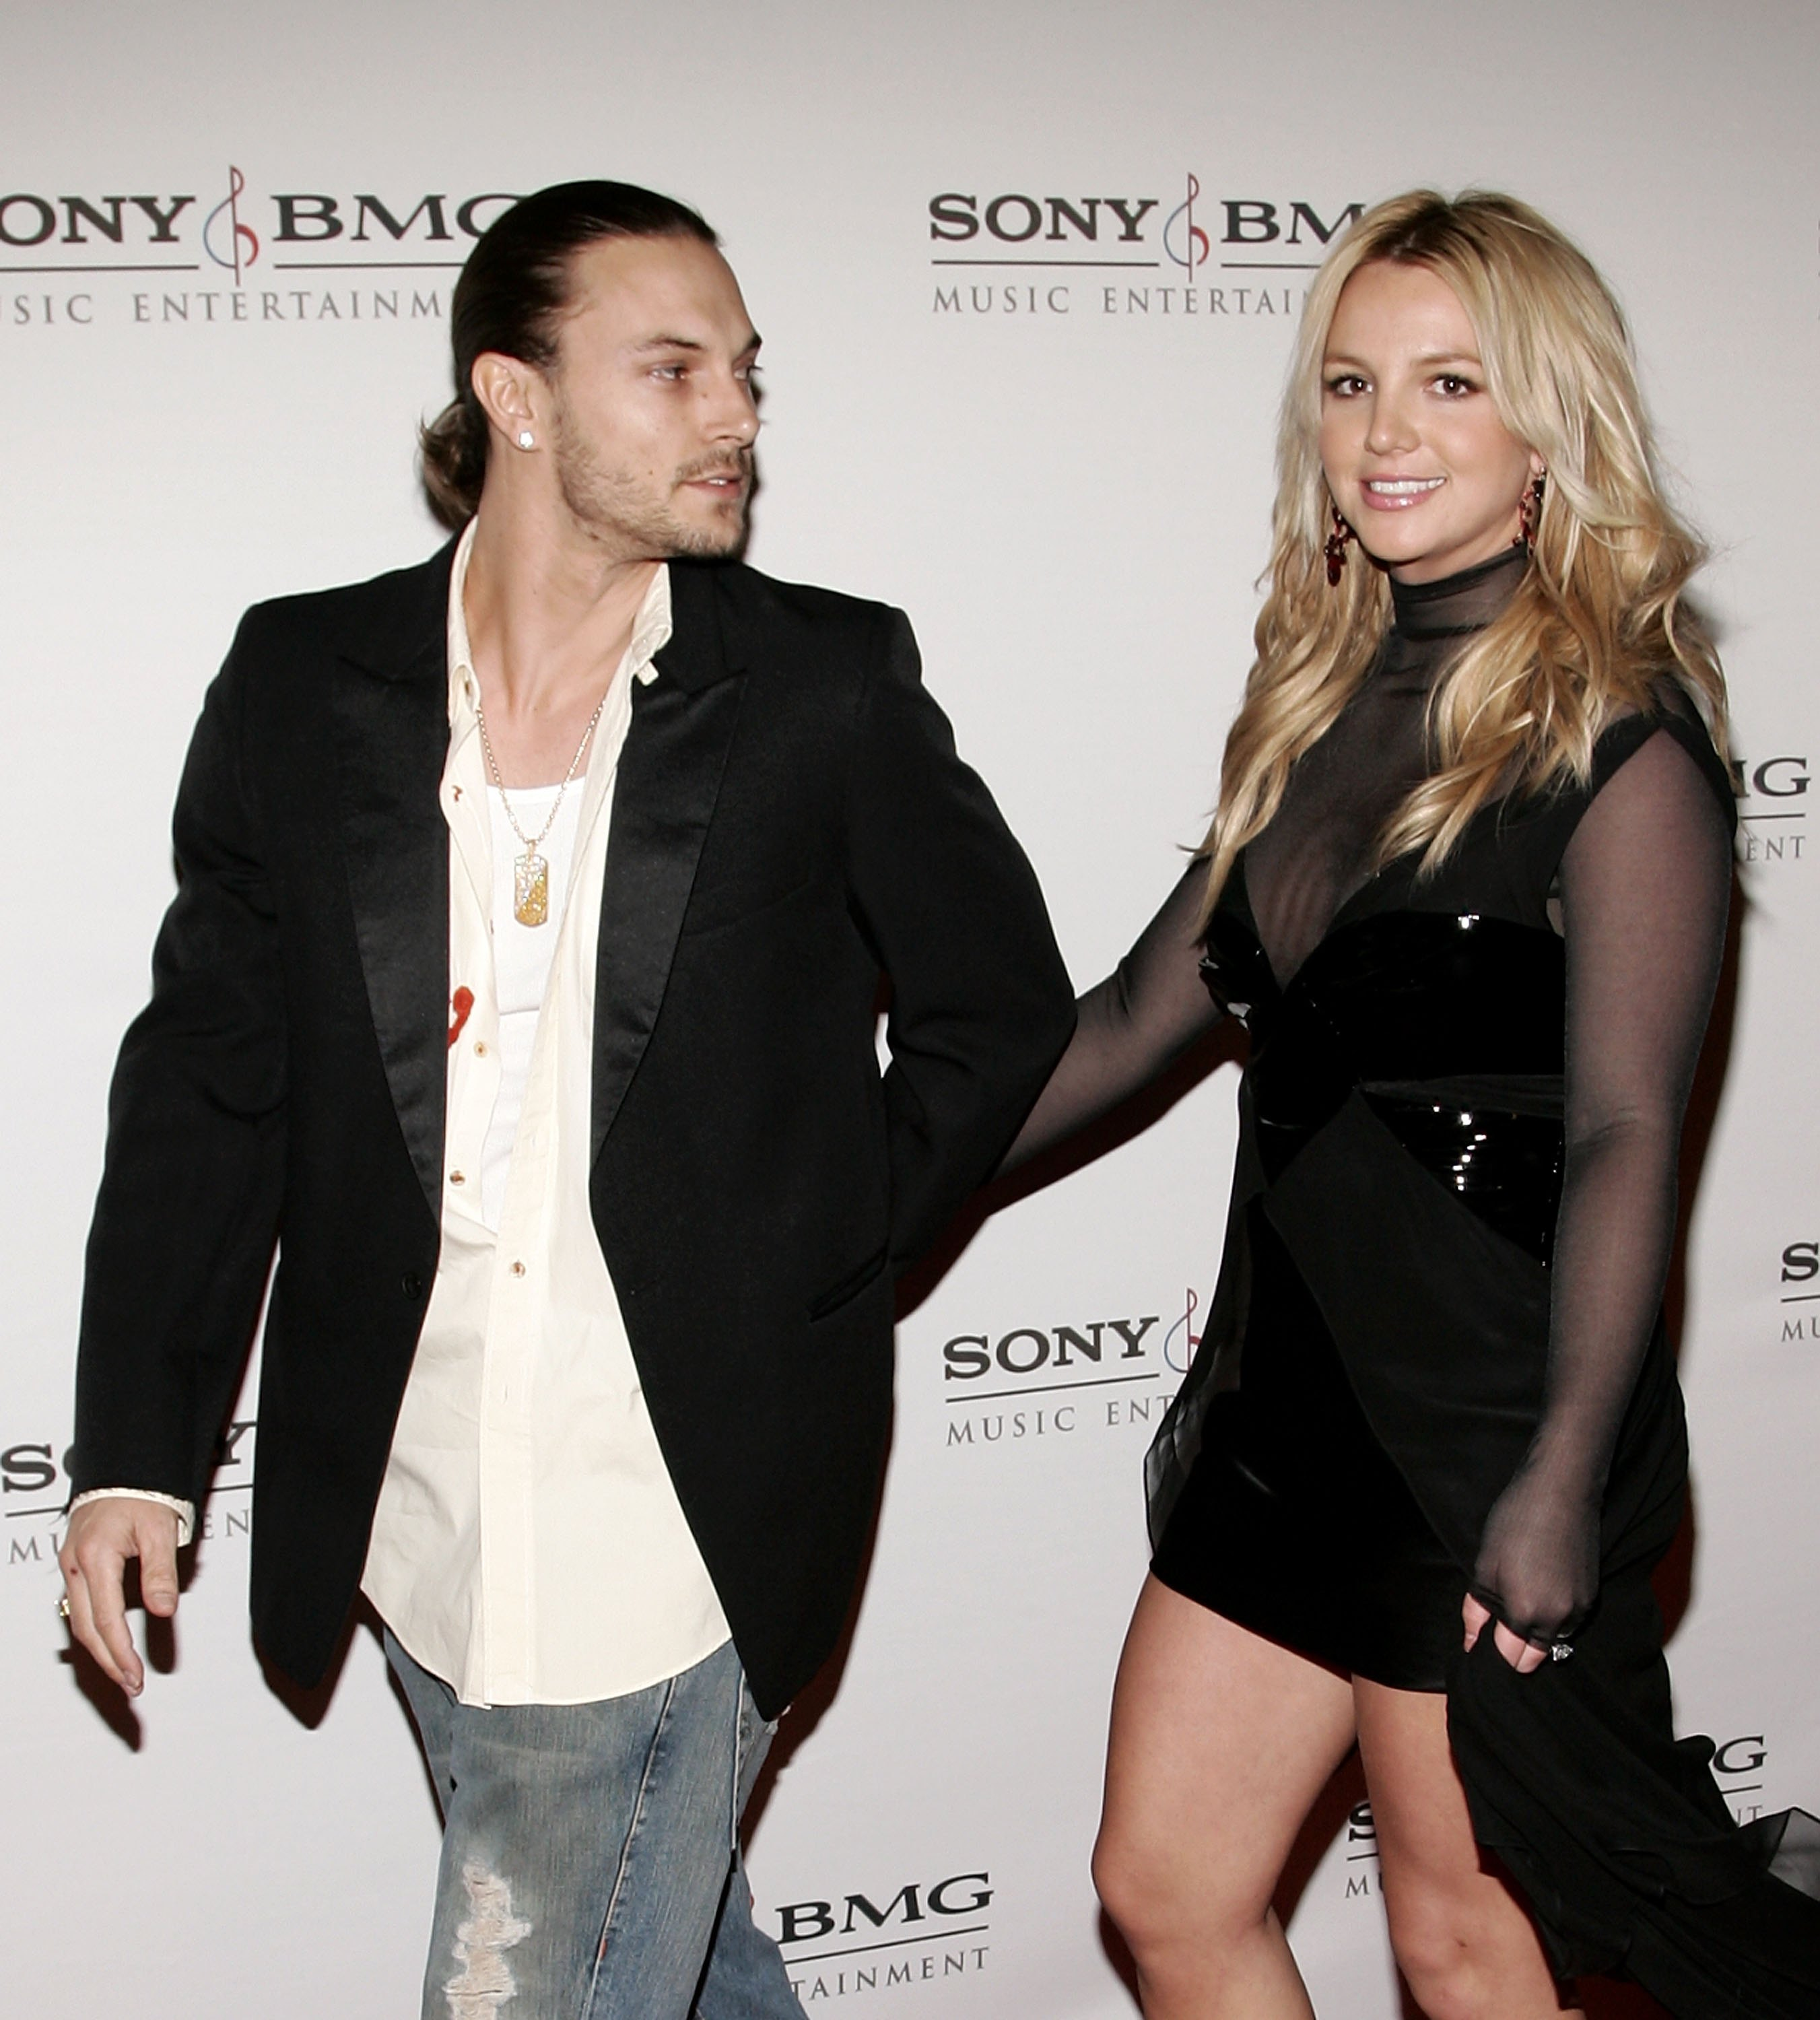 SONY BMG Grammy Party - Arrivals